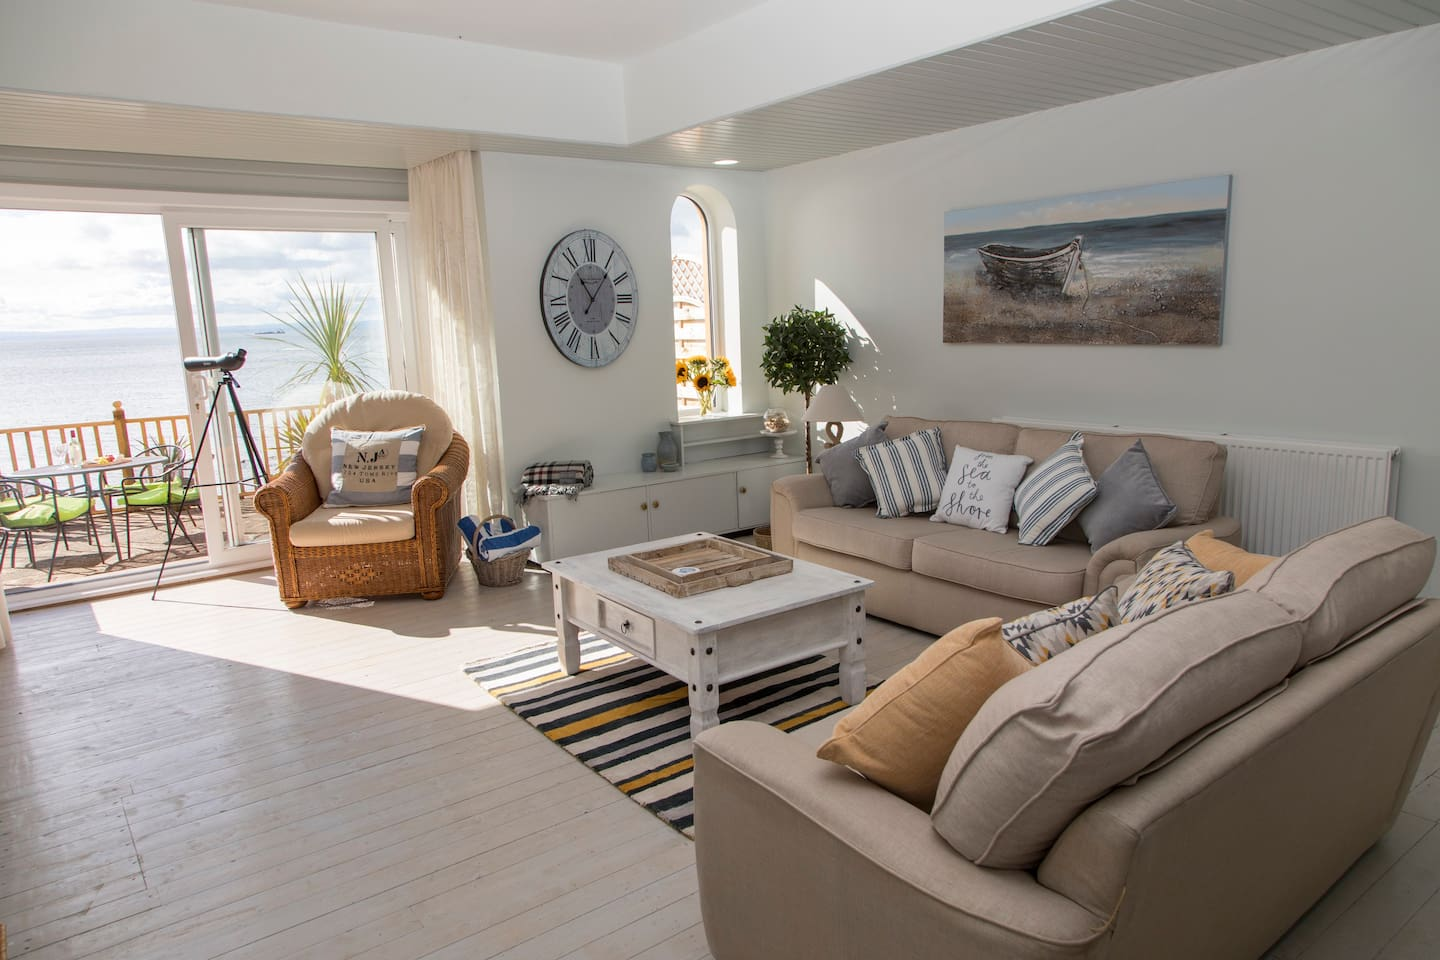 Periwinkle Beach House, Lower Largo Fife